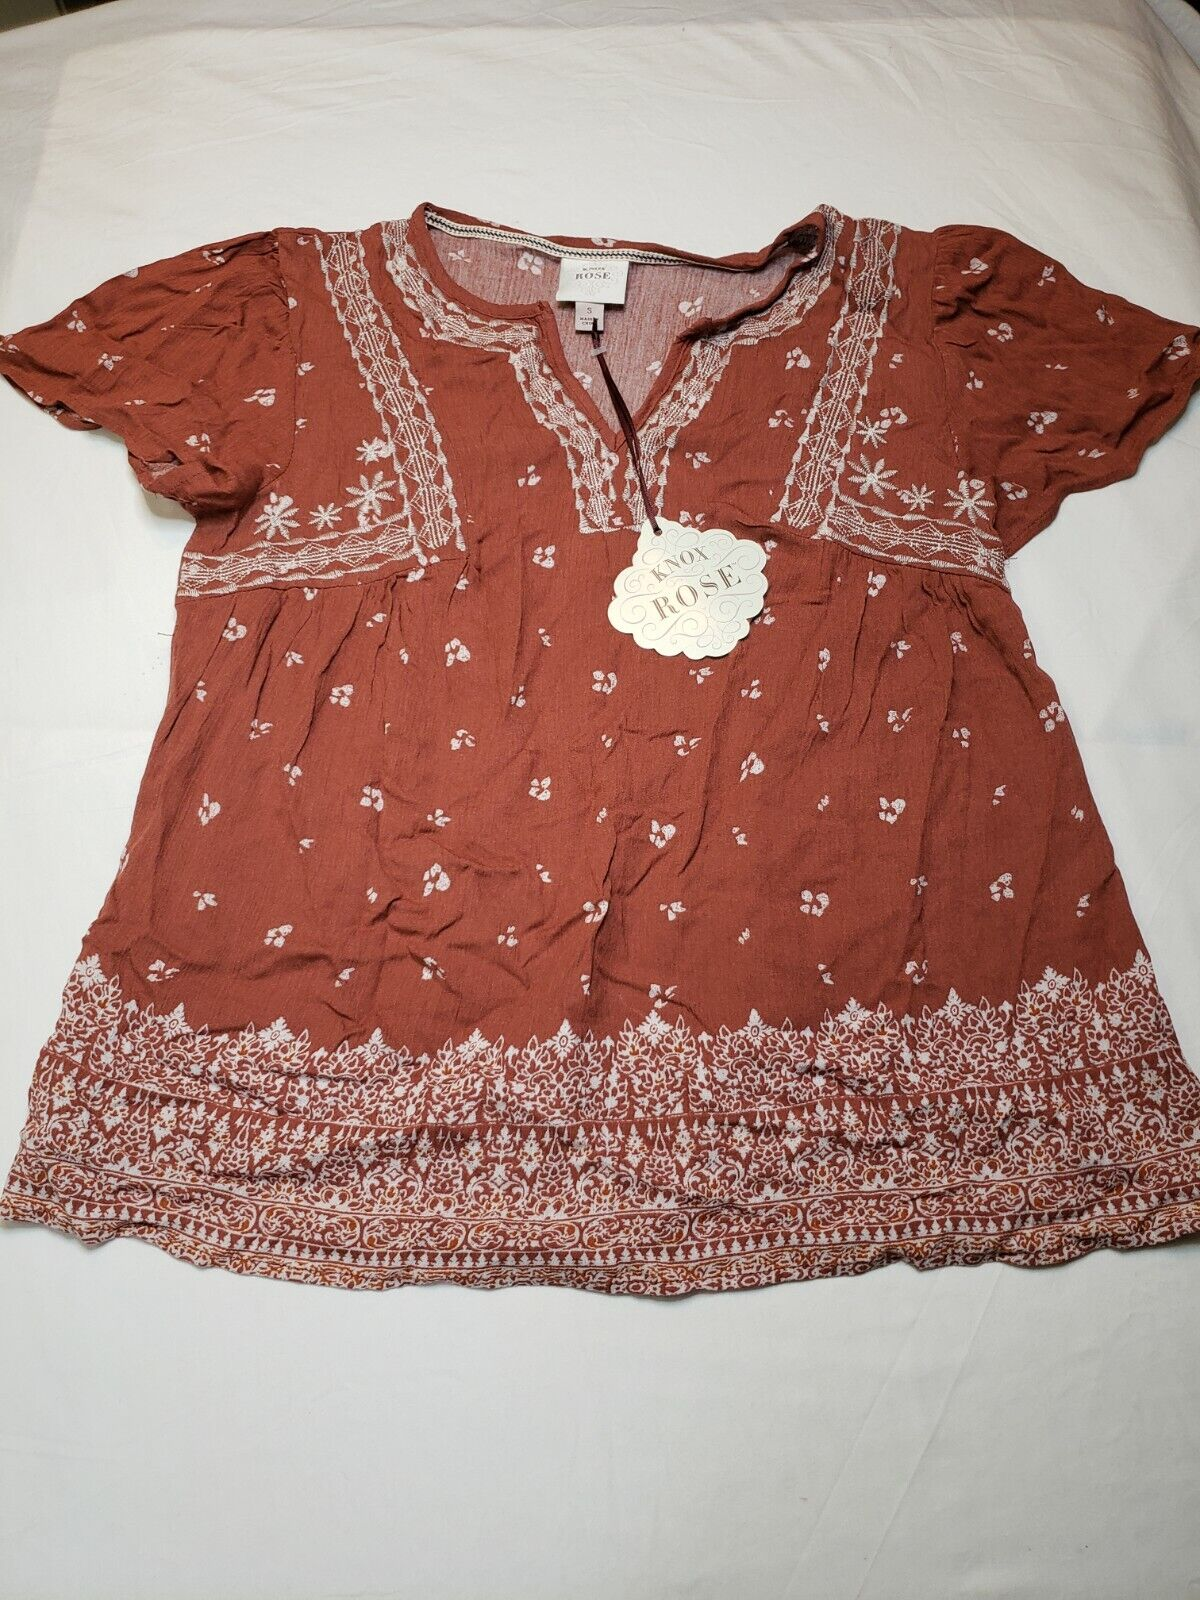 Knox Rose Rust Red Short Sleeve V Neck Blouse Size S Gorgeous Accents Trendy Fun - $13.99